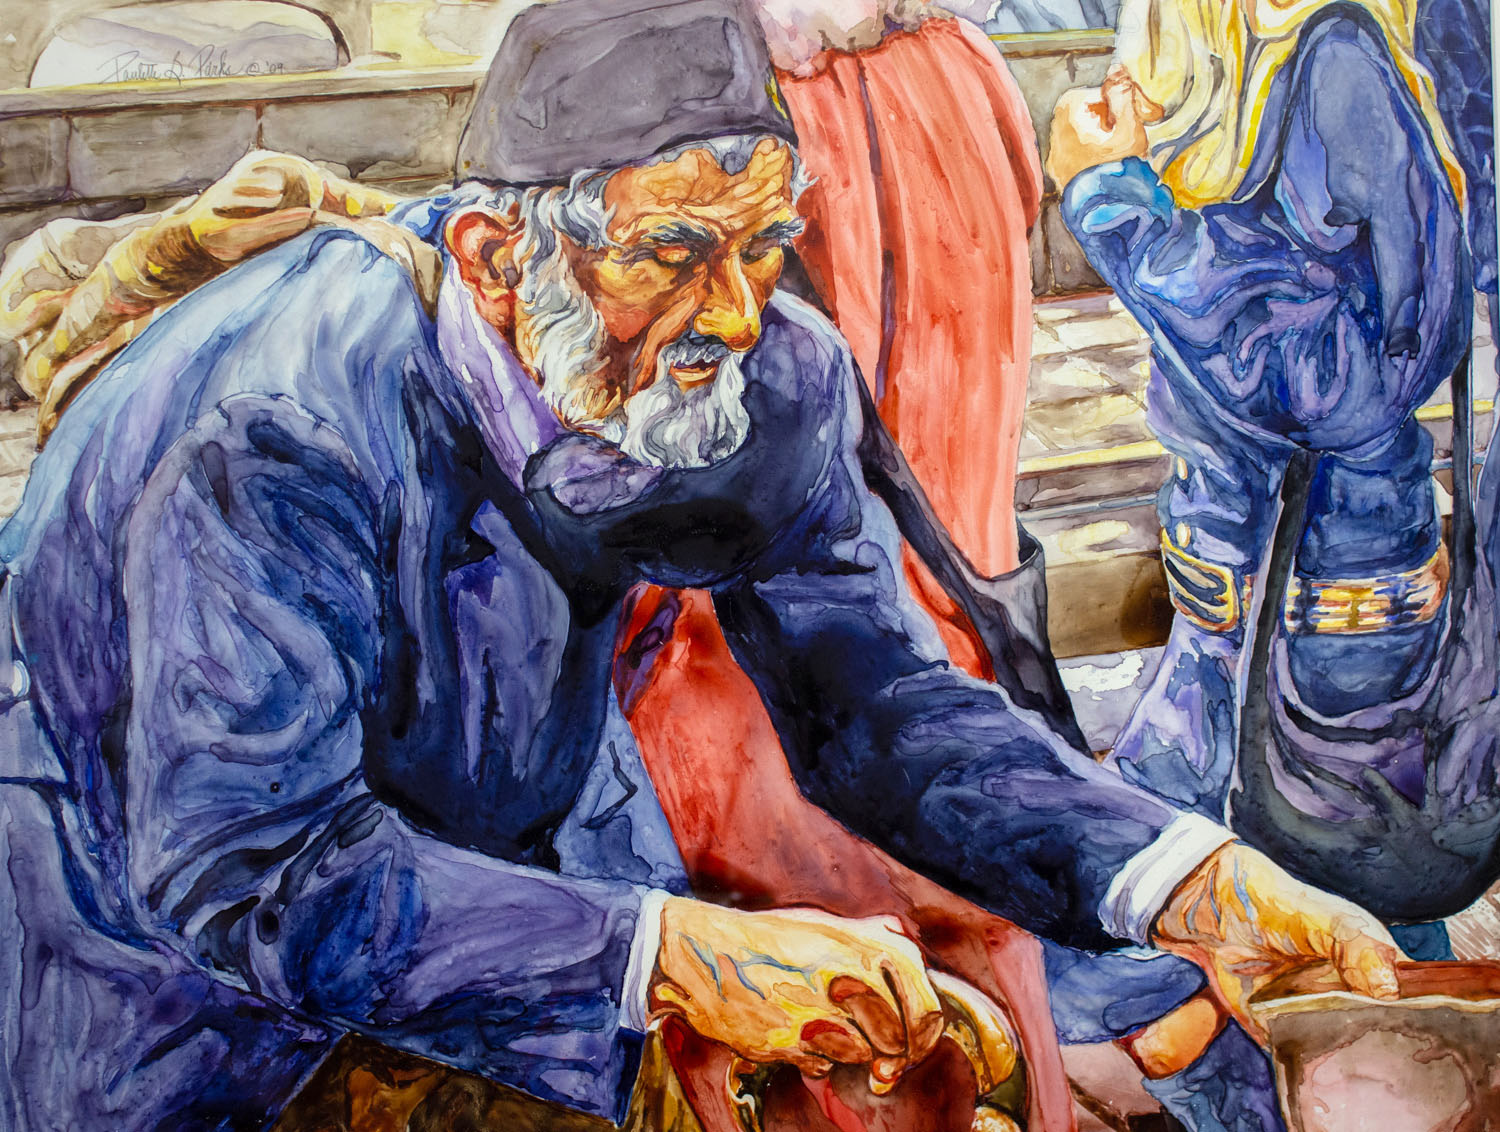 Beggar of Florence by Paulette B. Parks, Watercolor, 2009, Foundation Purchase